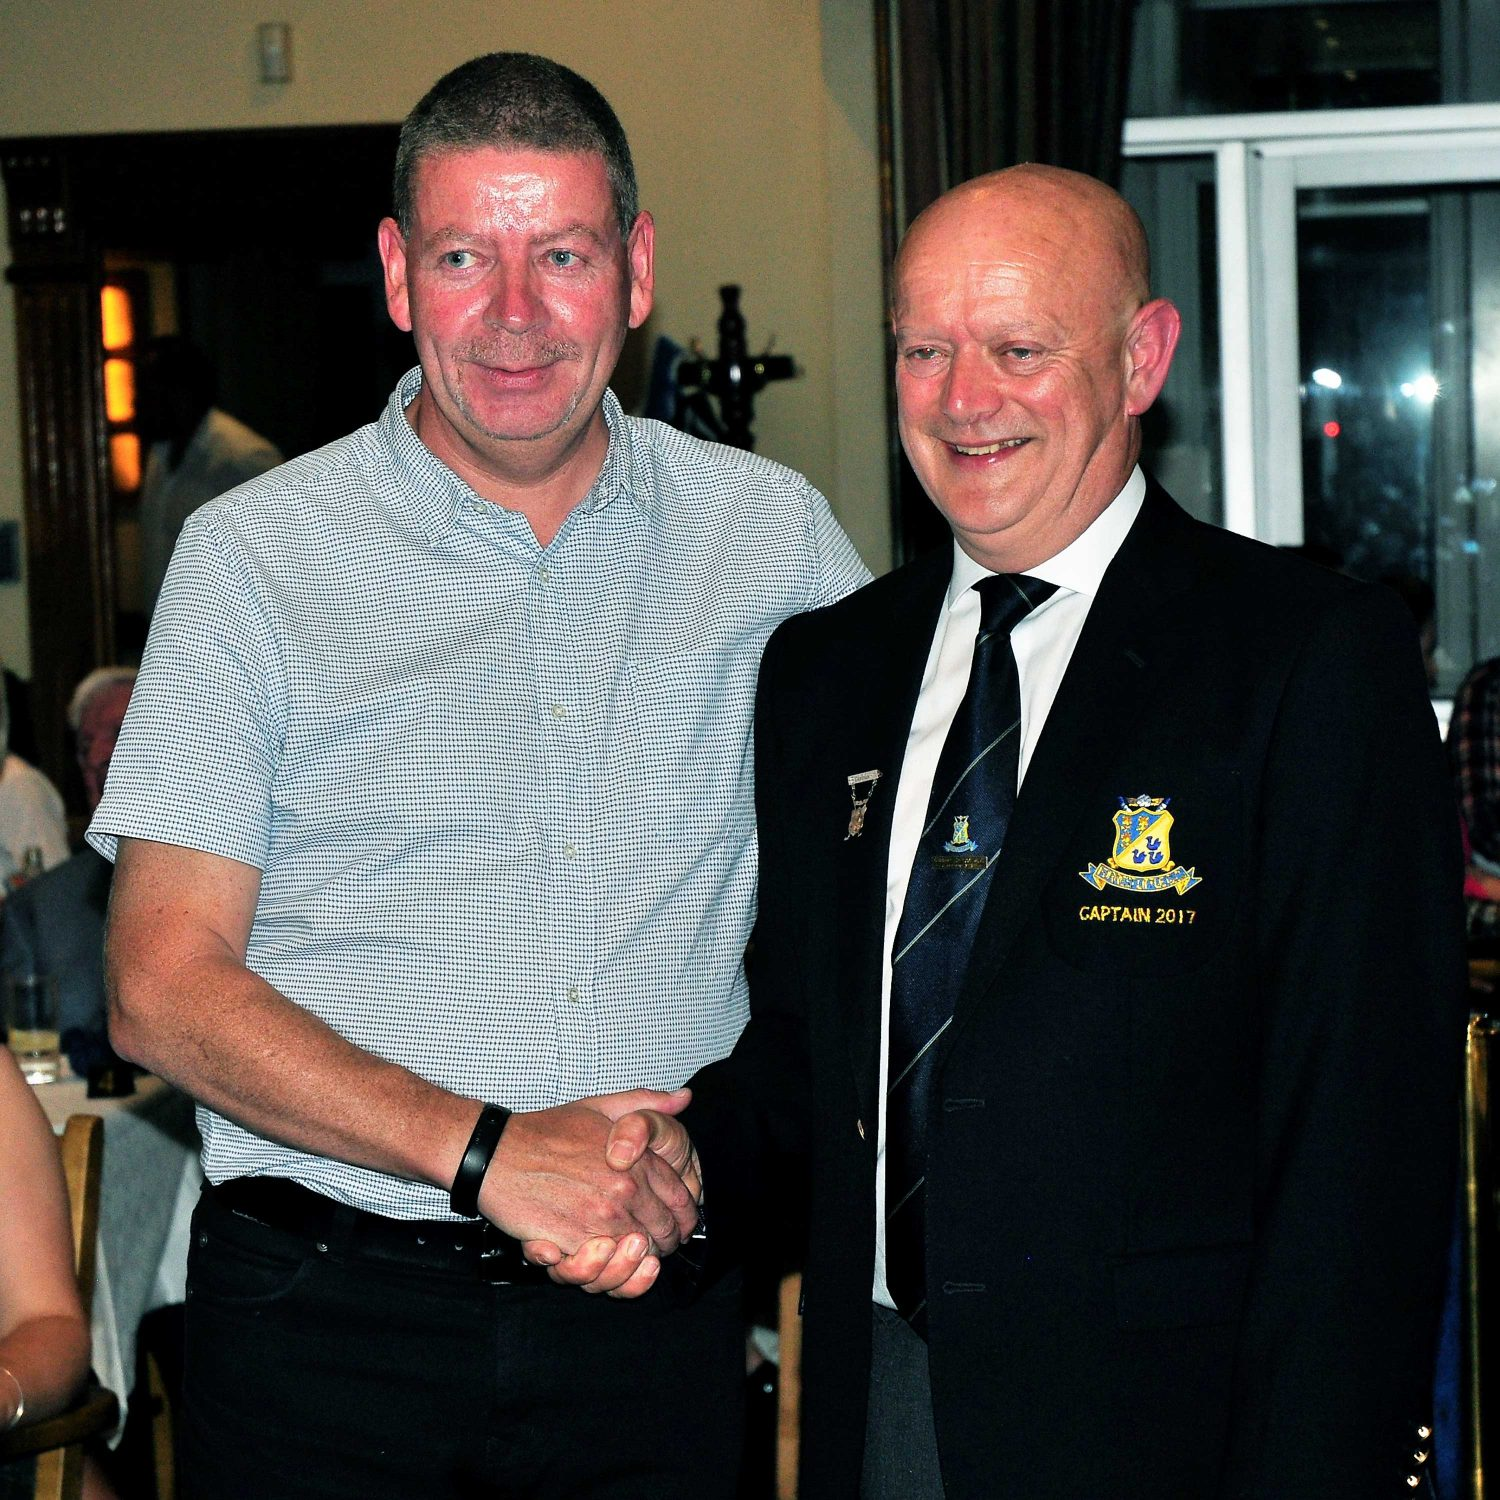 Derek-McCabe-winner-of-Captain's-Prize-2017